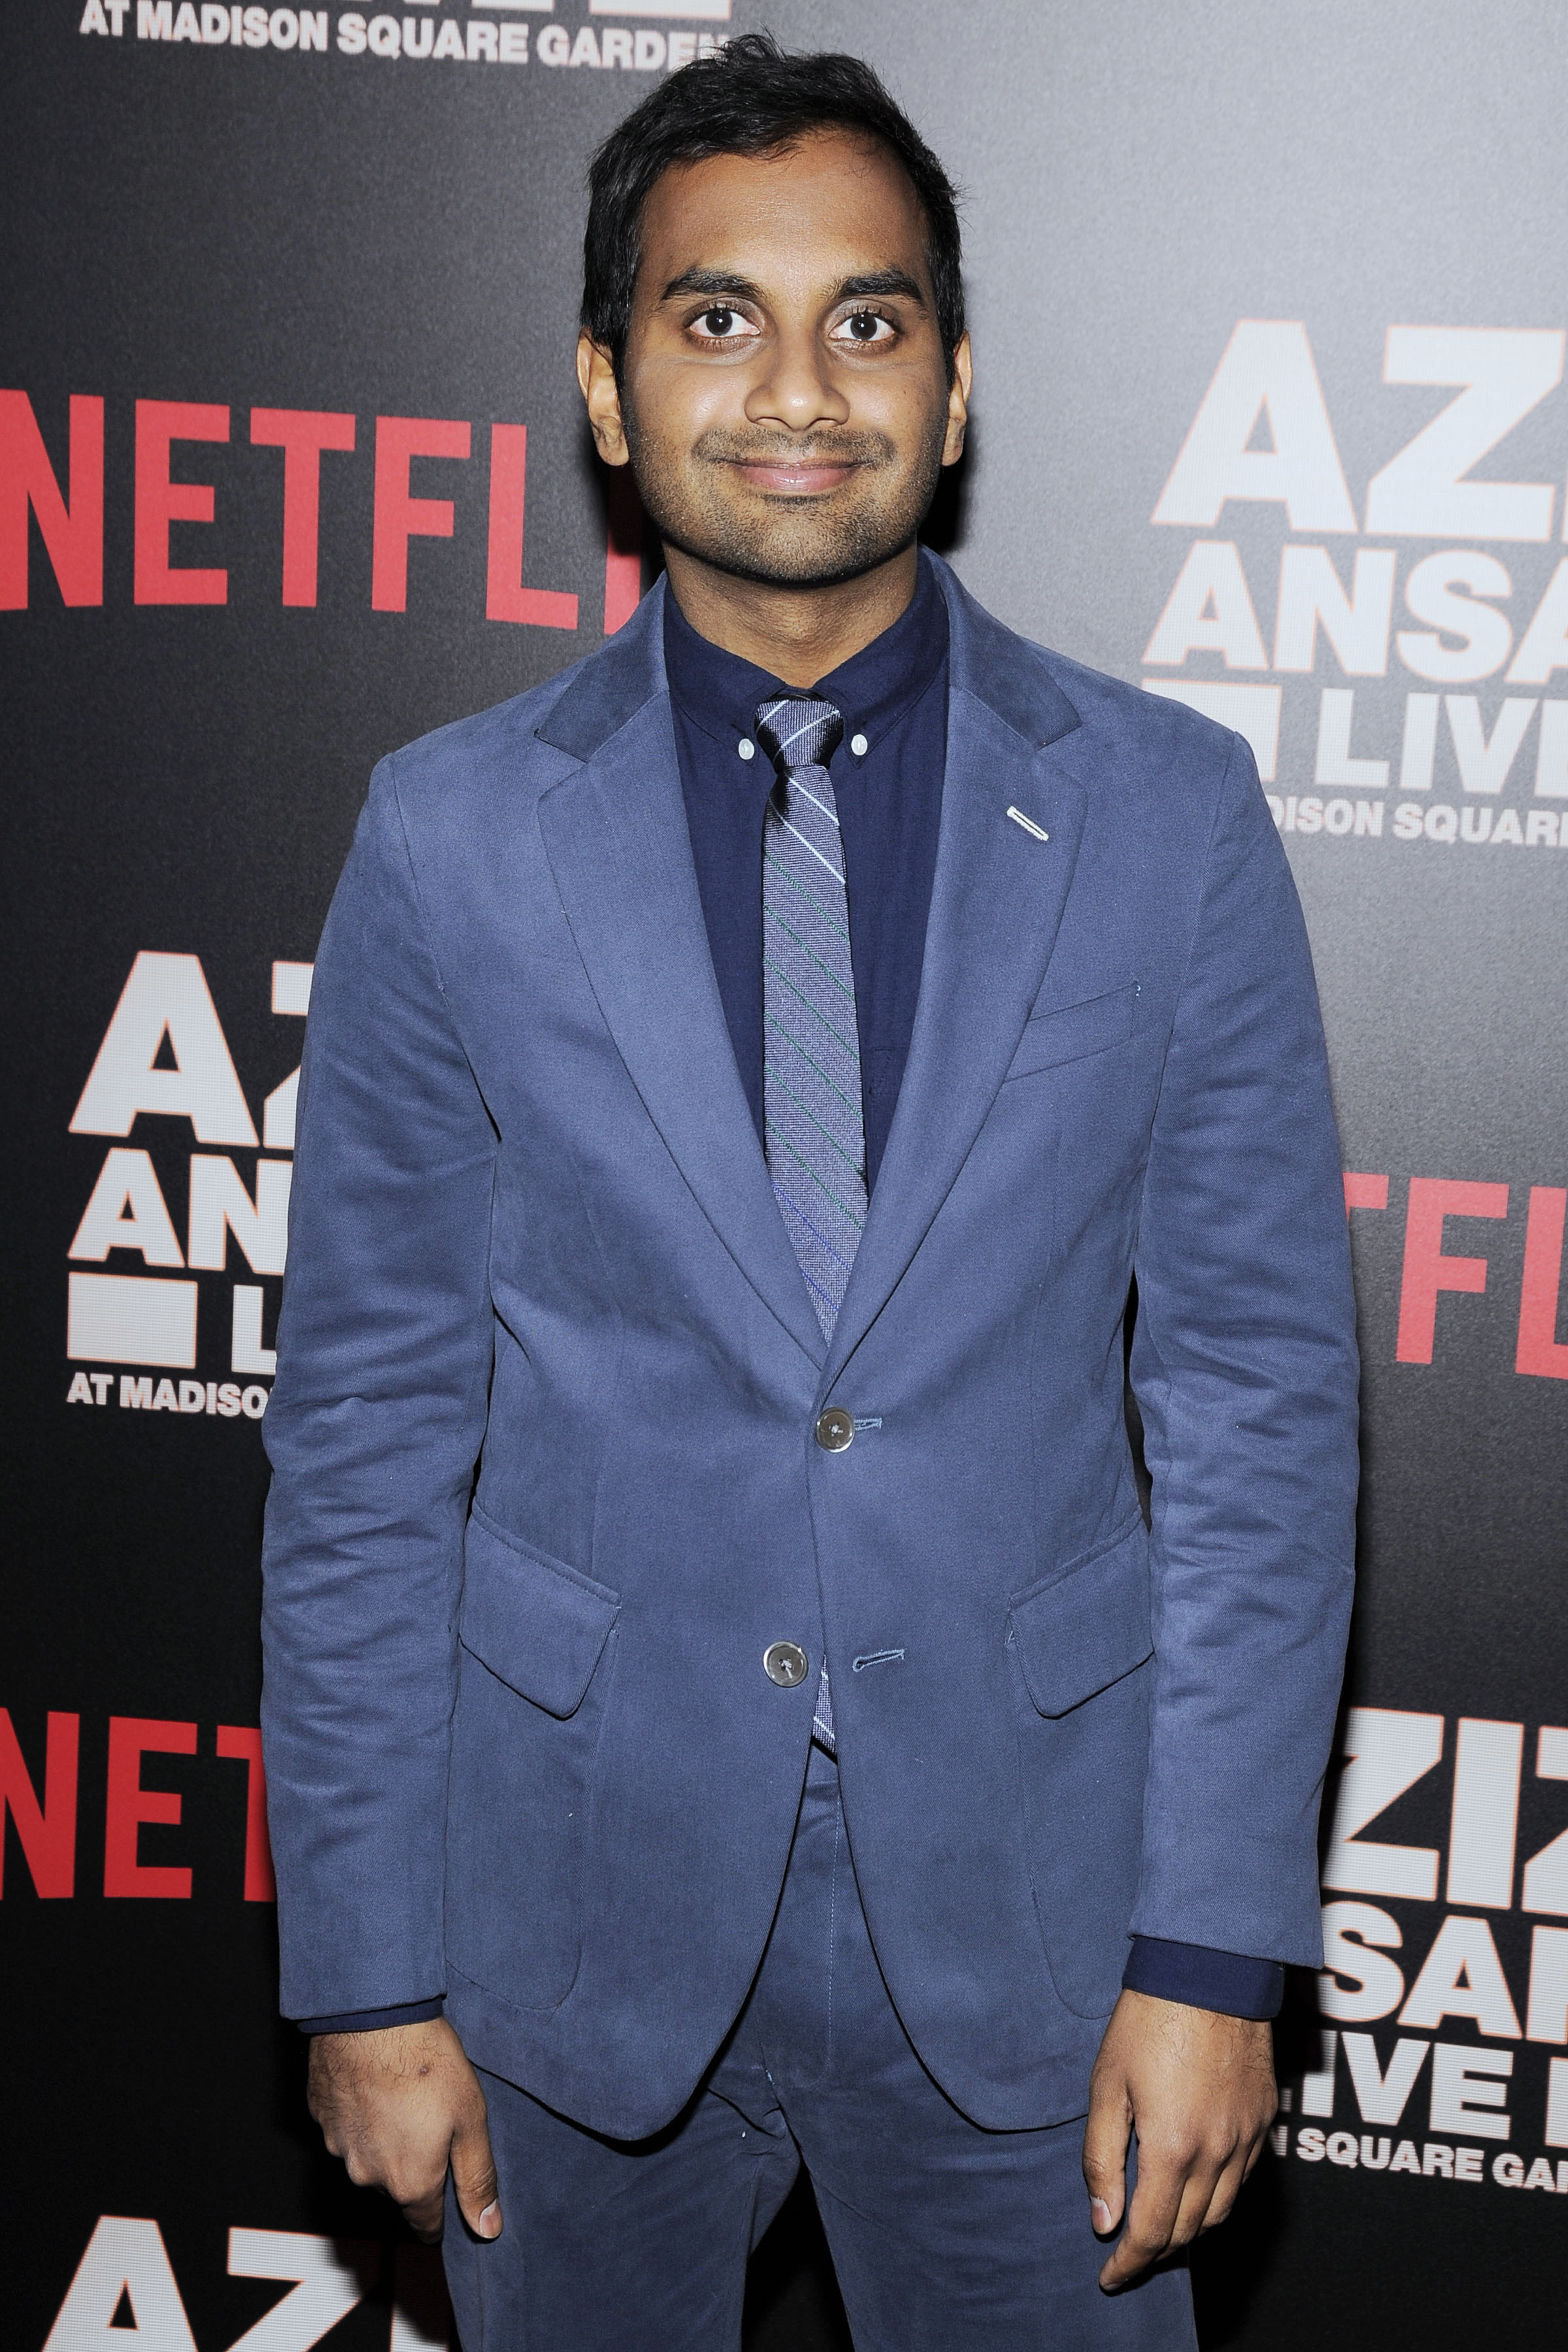 Aziz Ansari at  NETFLIX hosts premiere of Aziz Ansari: Live at Madison Square Garden  in New York City on March 6, 2015.